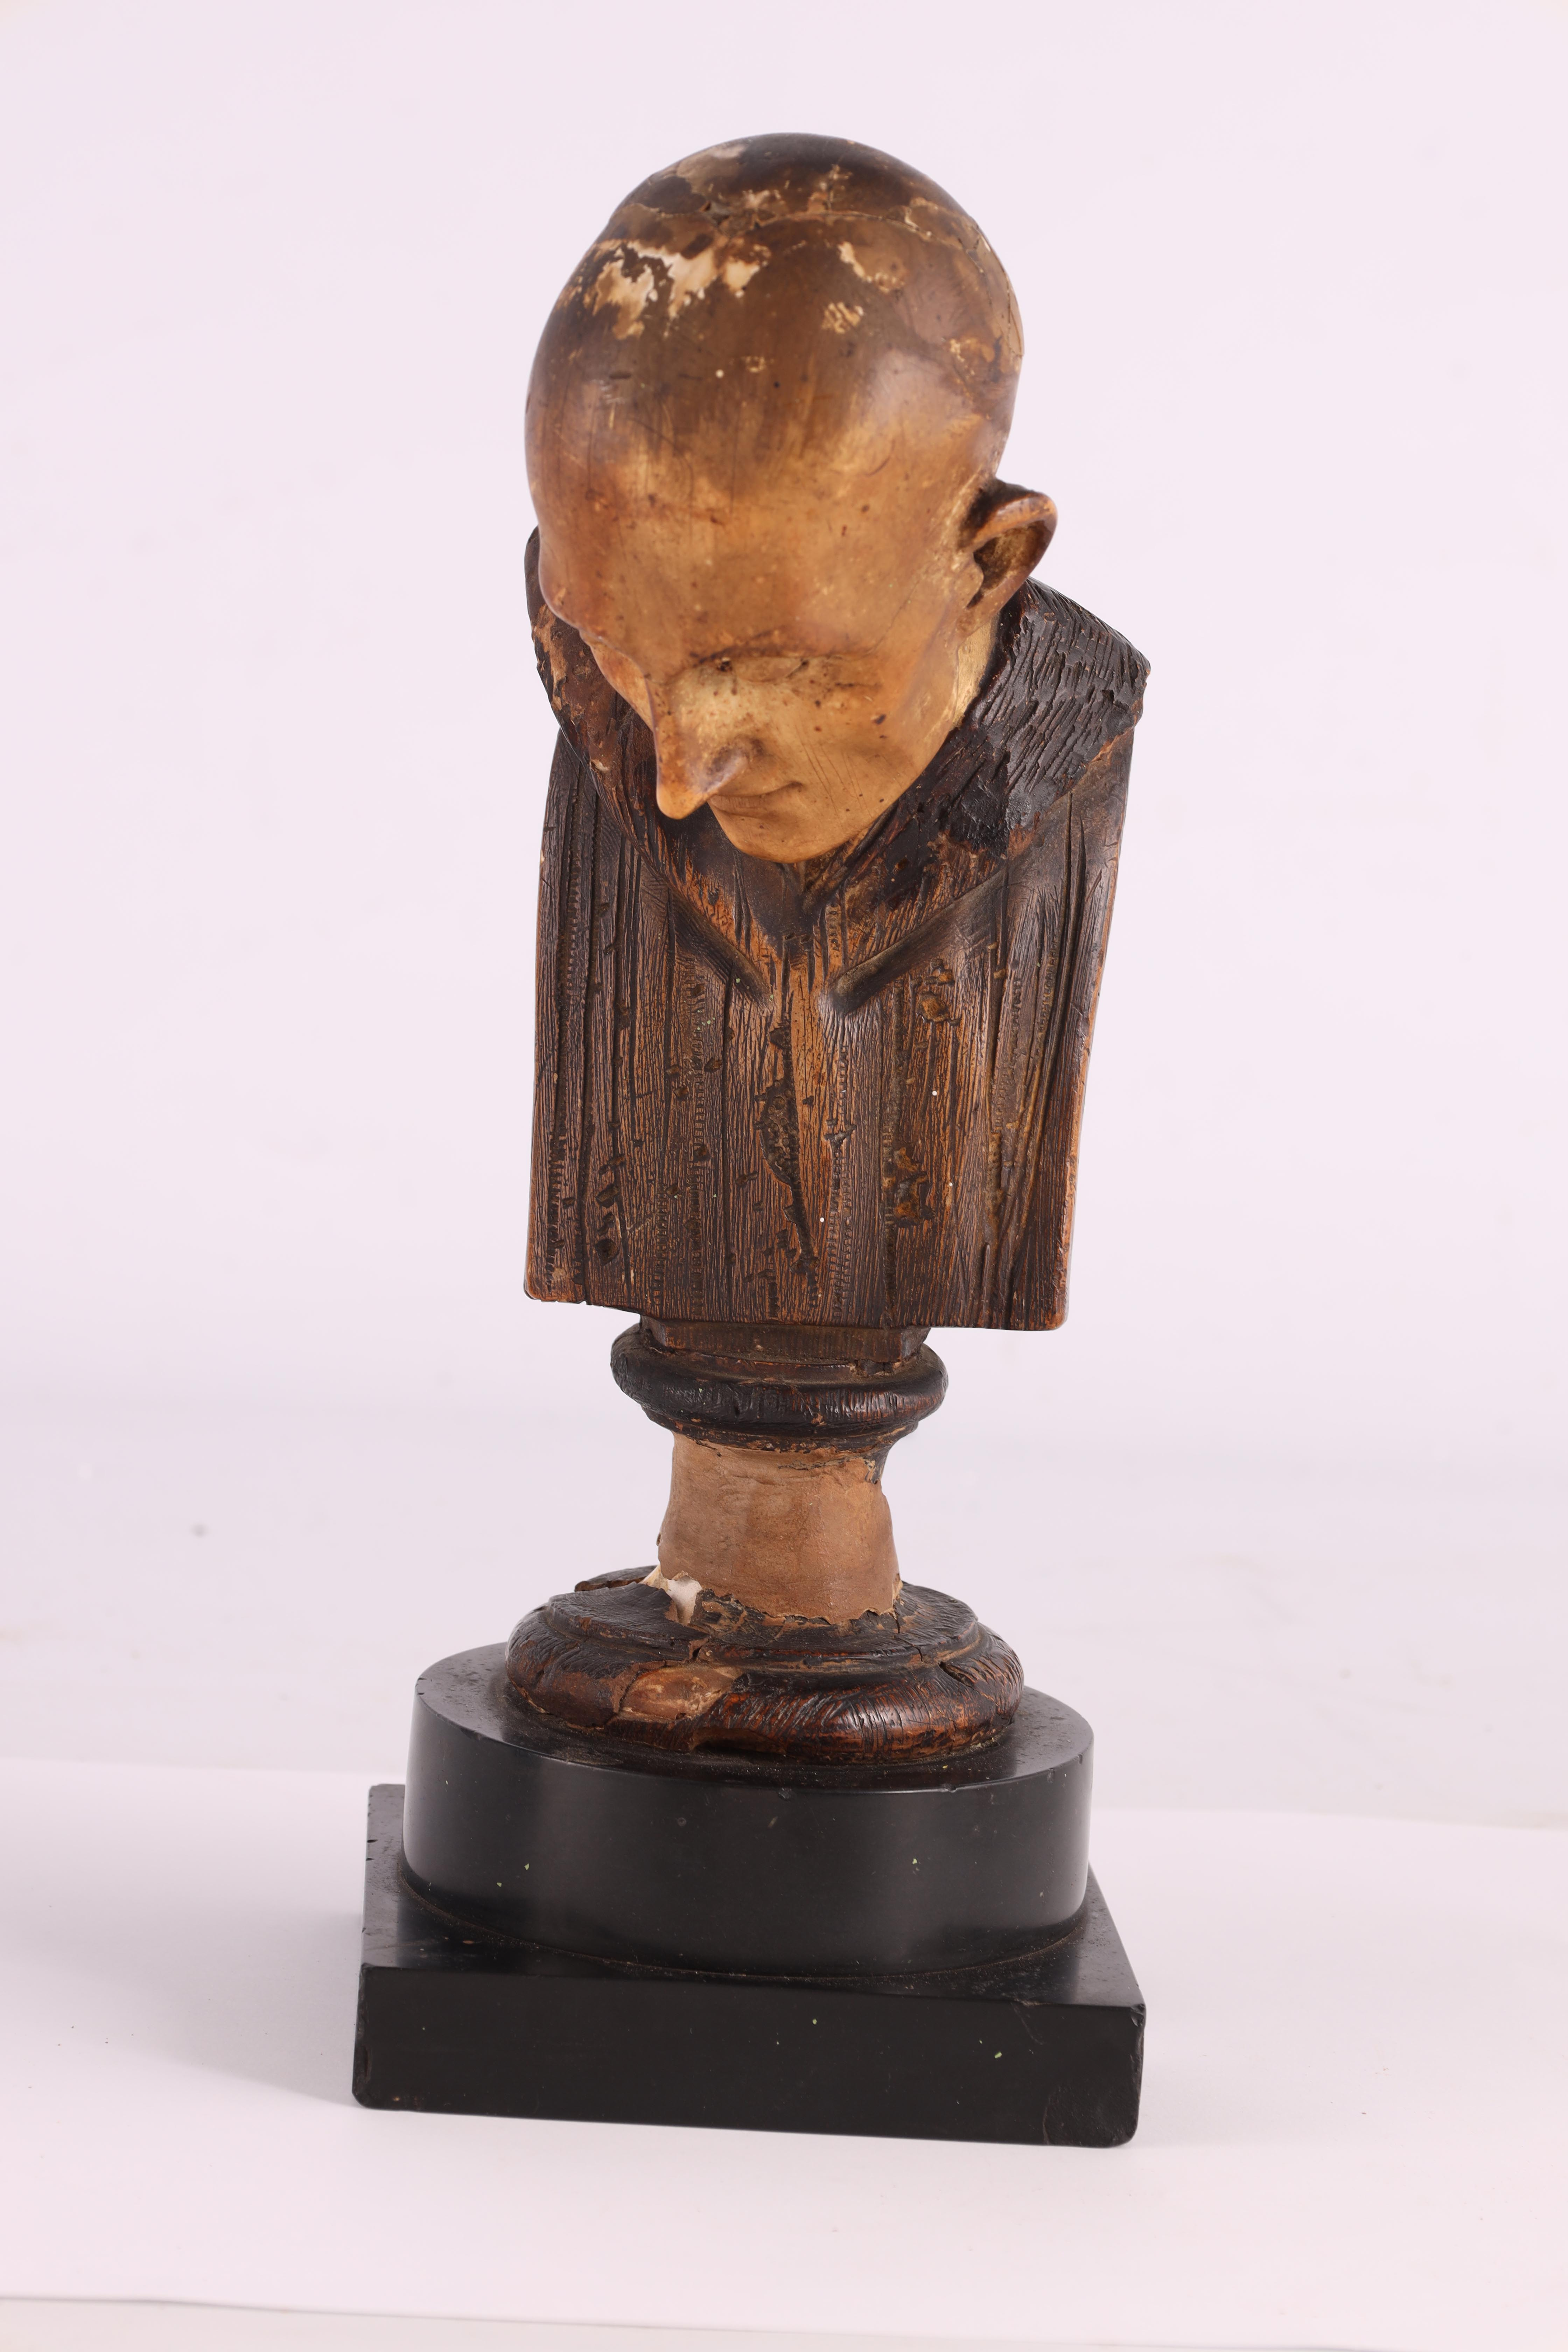 A 19TH CENTURY POLYCHROME PLASTER BUST modelled as a monk with blue eyes mounted on a black marble - Image 4 of 5